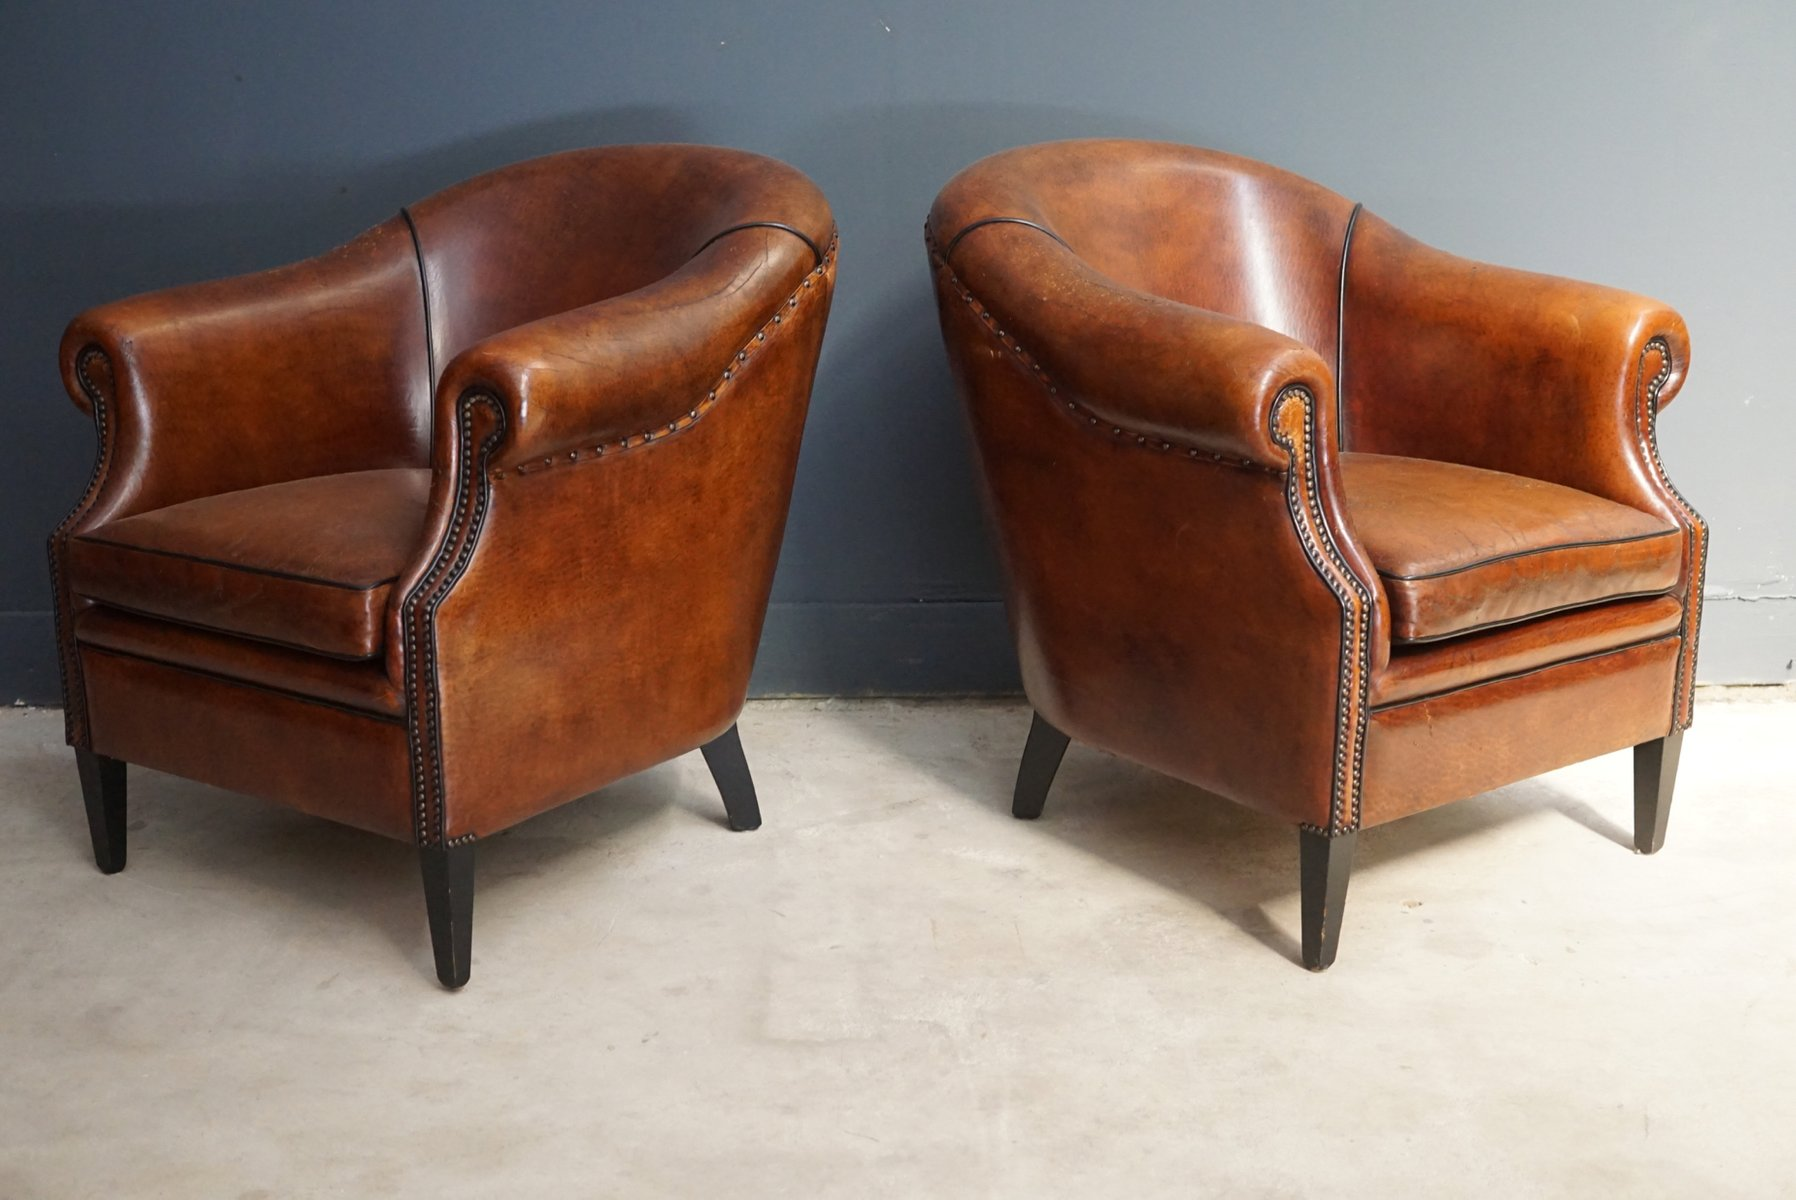 Vintage Cognac Leather Club Chairs, Set of 2 for sale at ...